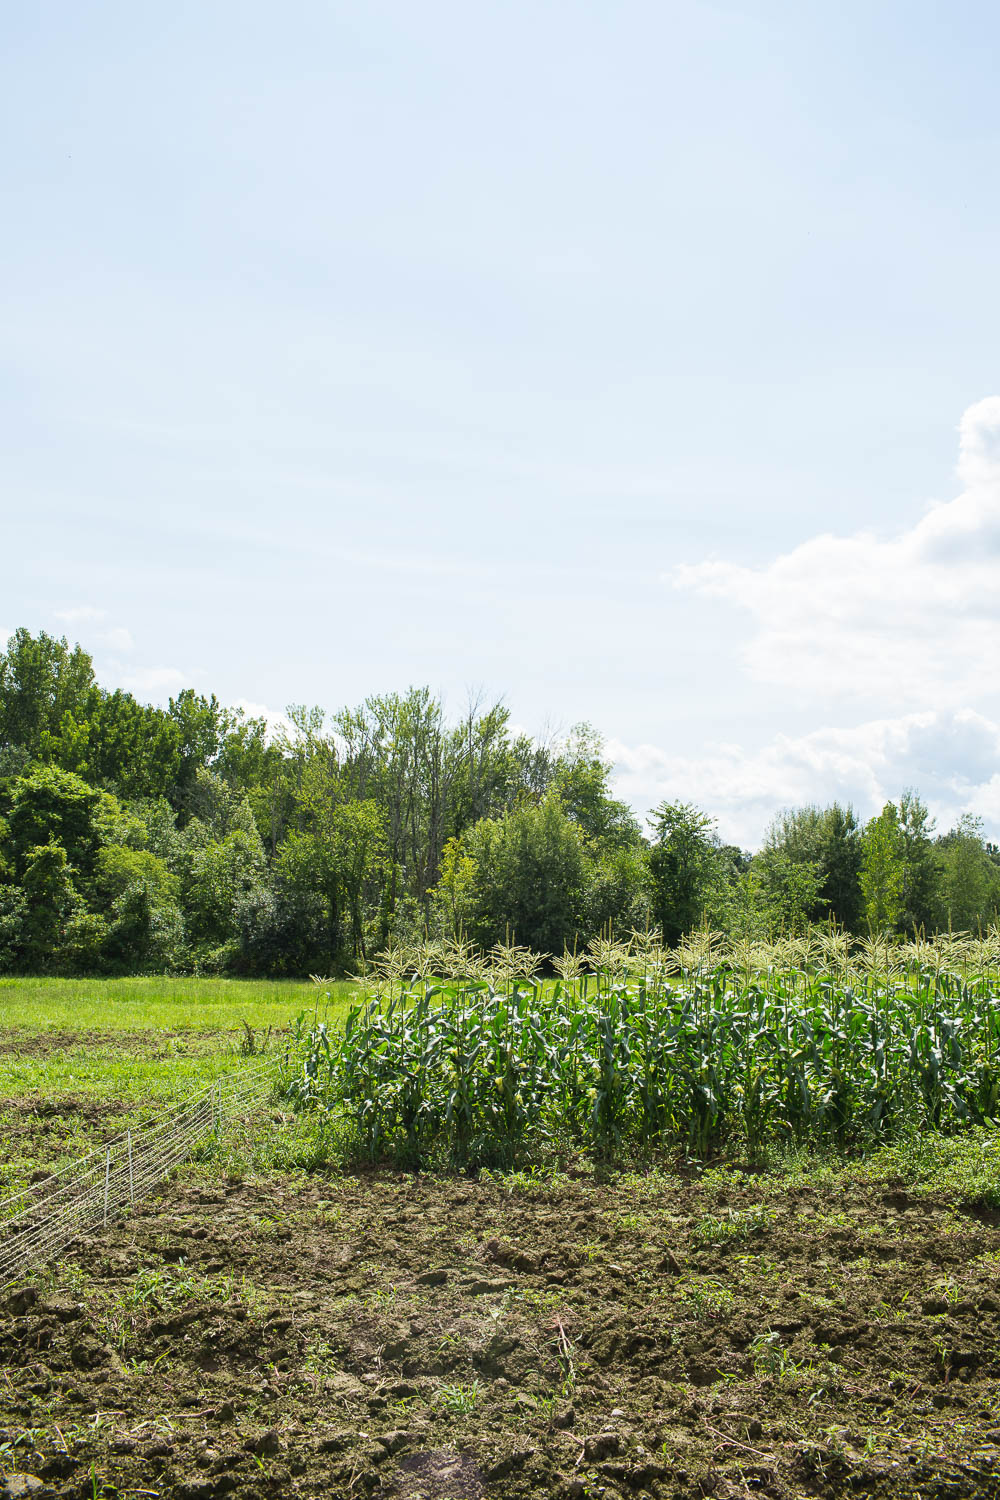 cornfield in kinderhook, ny